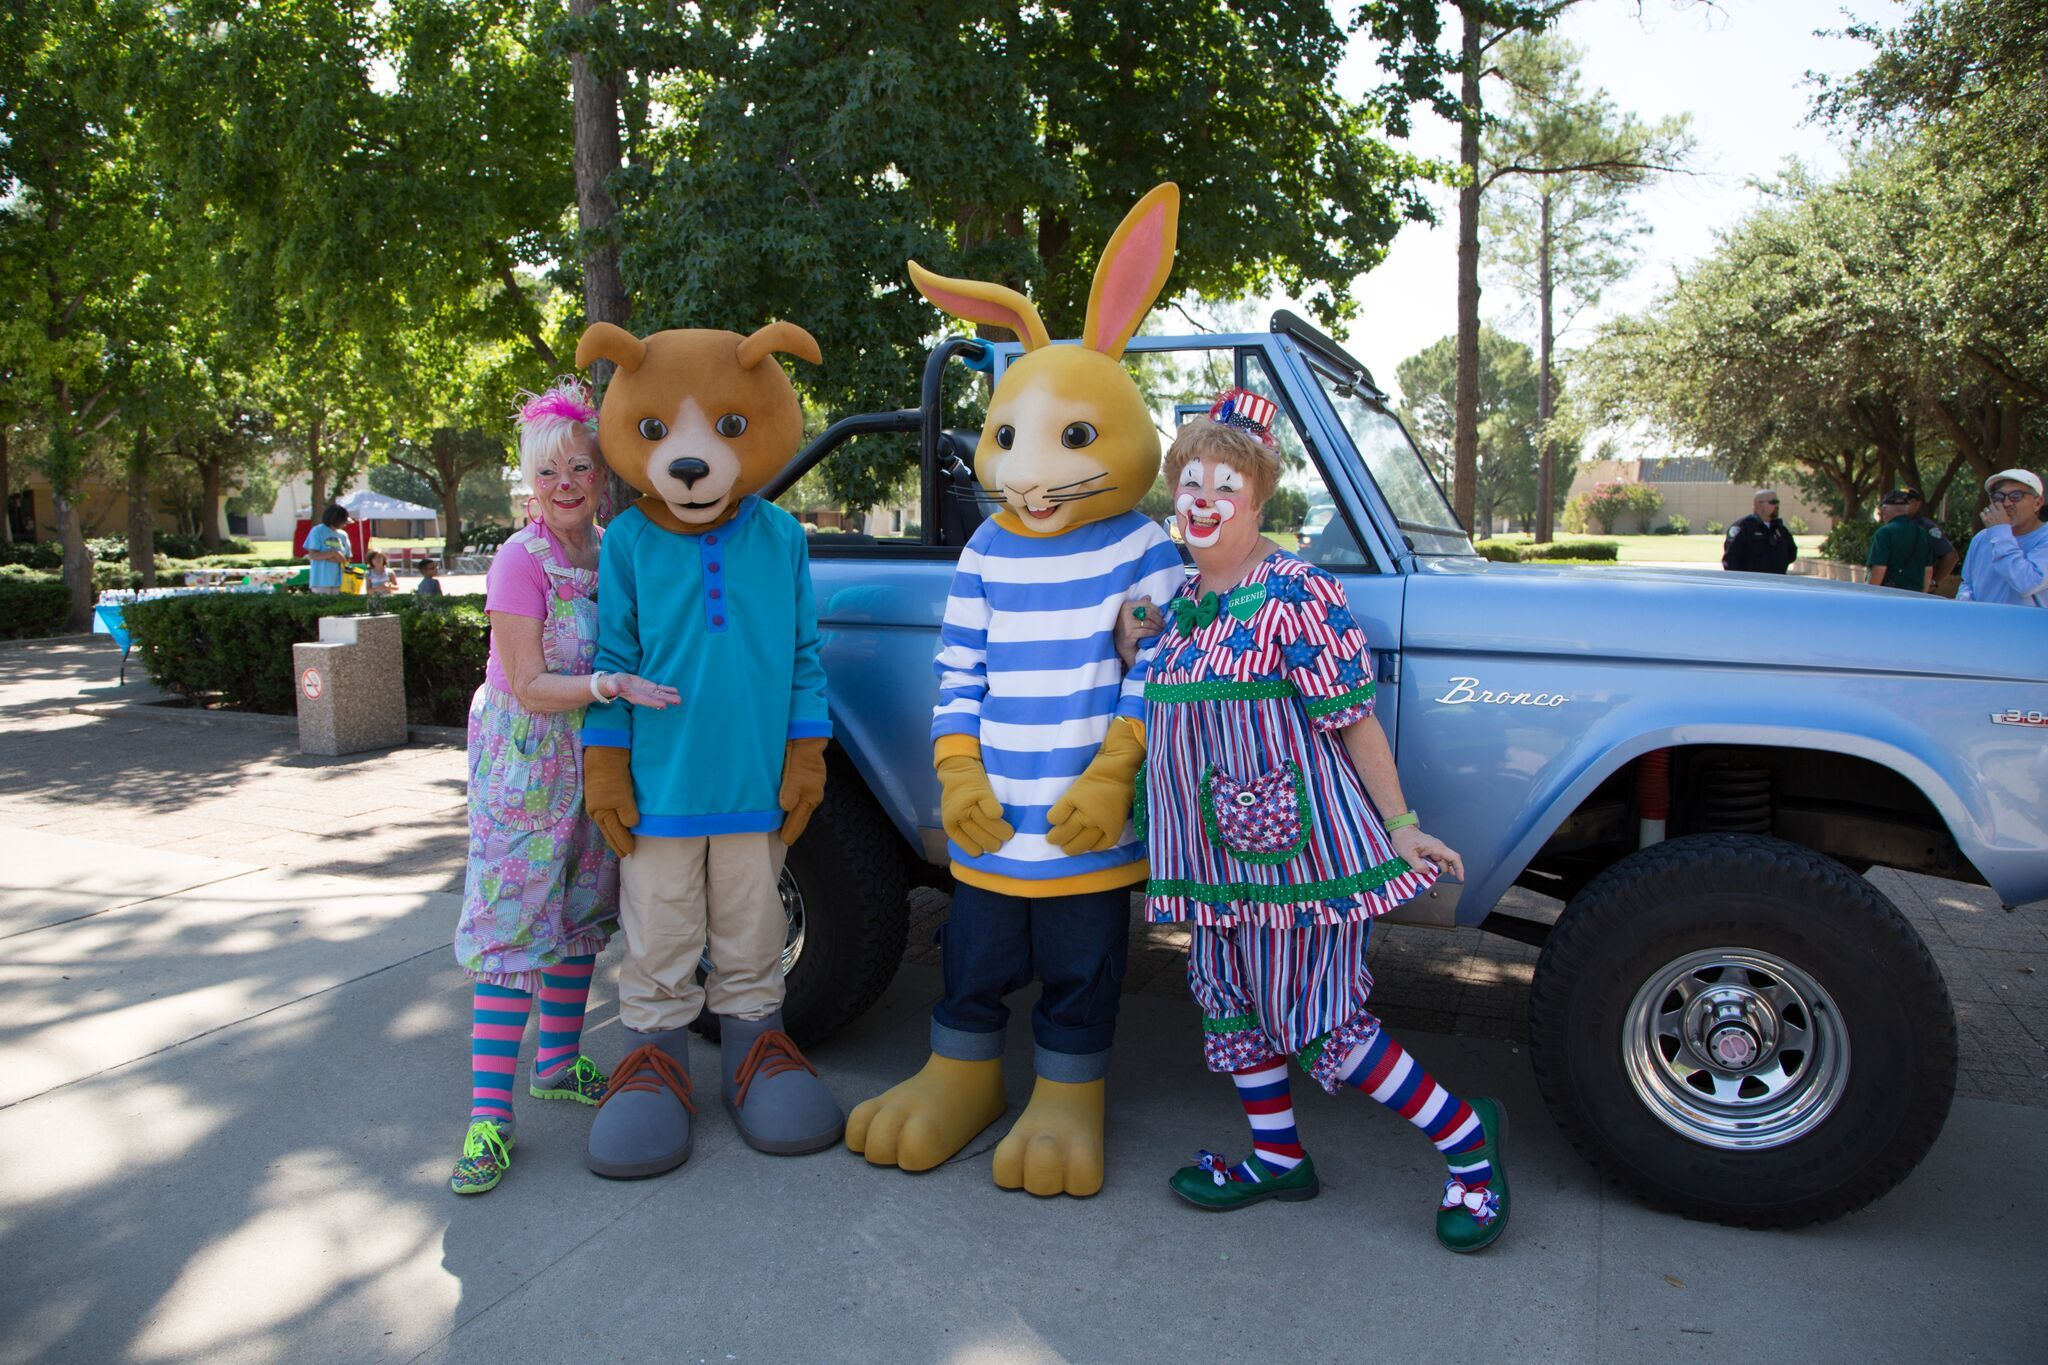 Willy Nilly and Thumper Mascots getting involved with their community